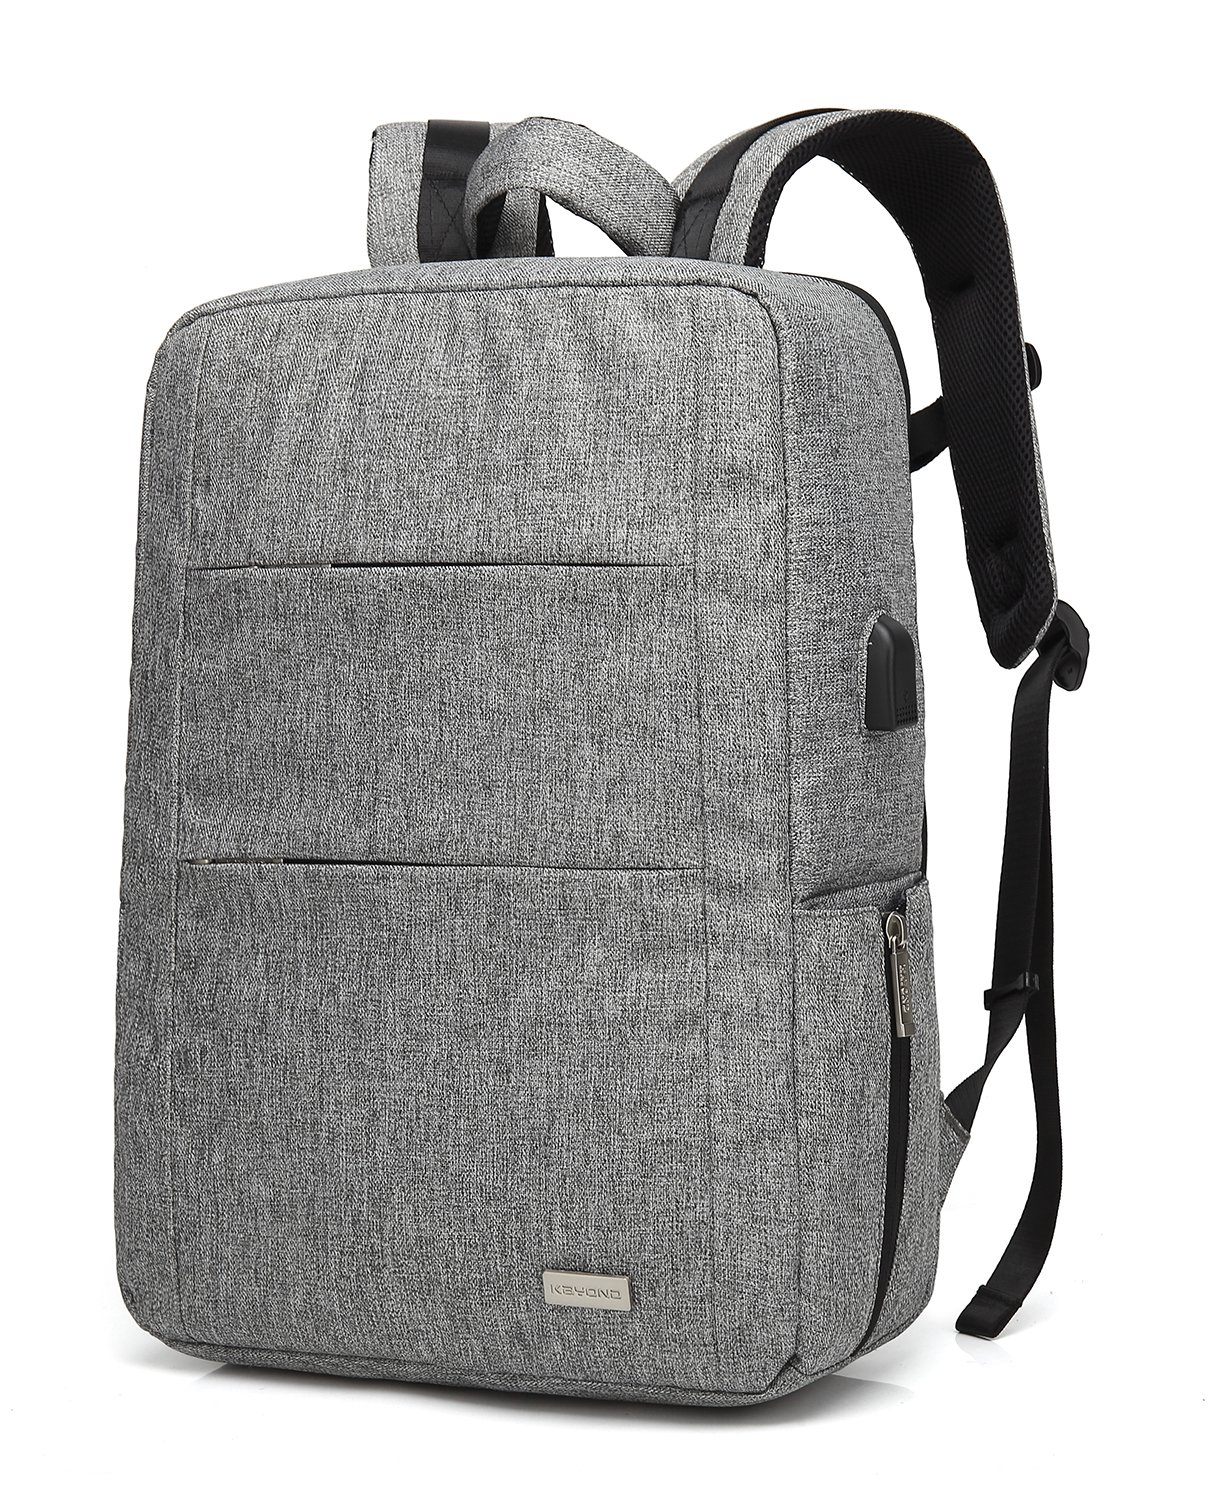 405bb4b77f KAYOND Business Laptop Backpack